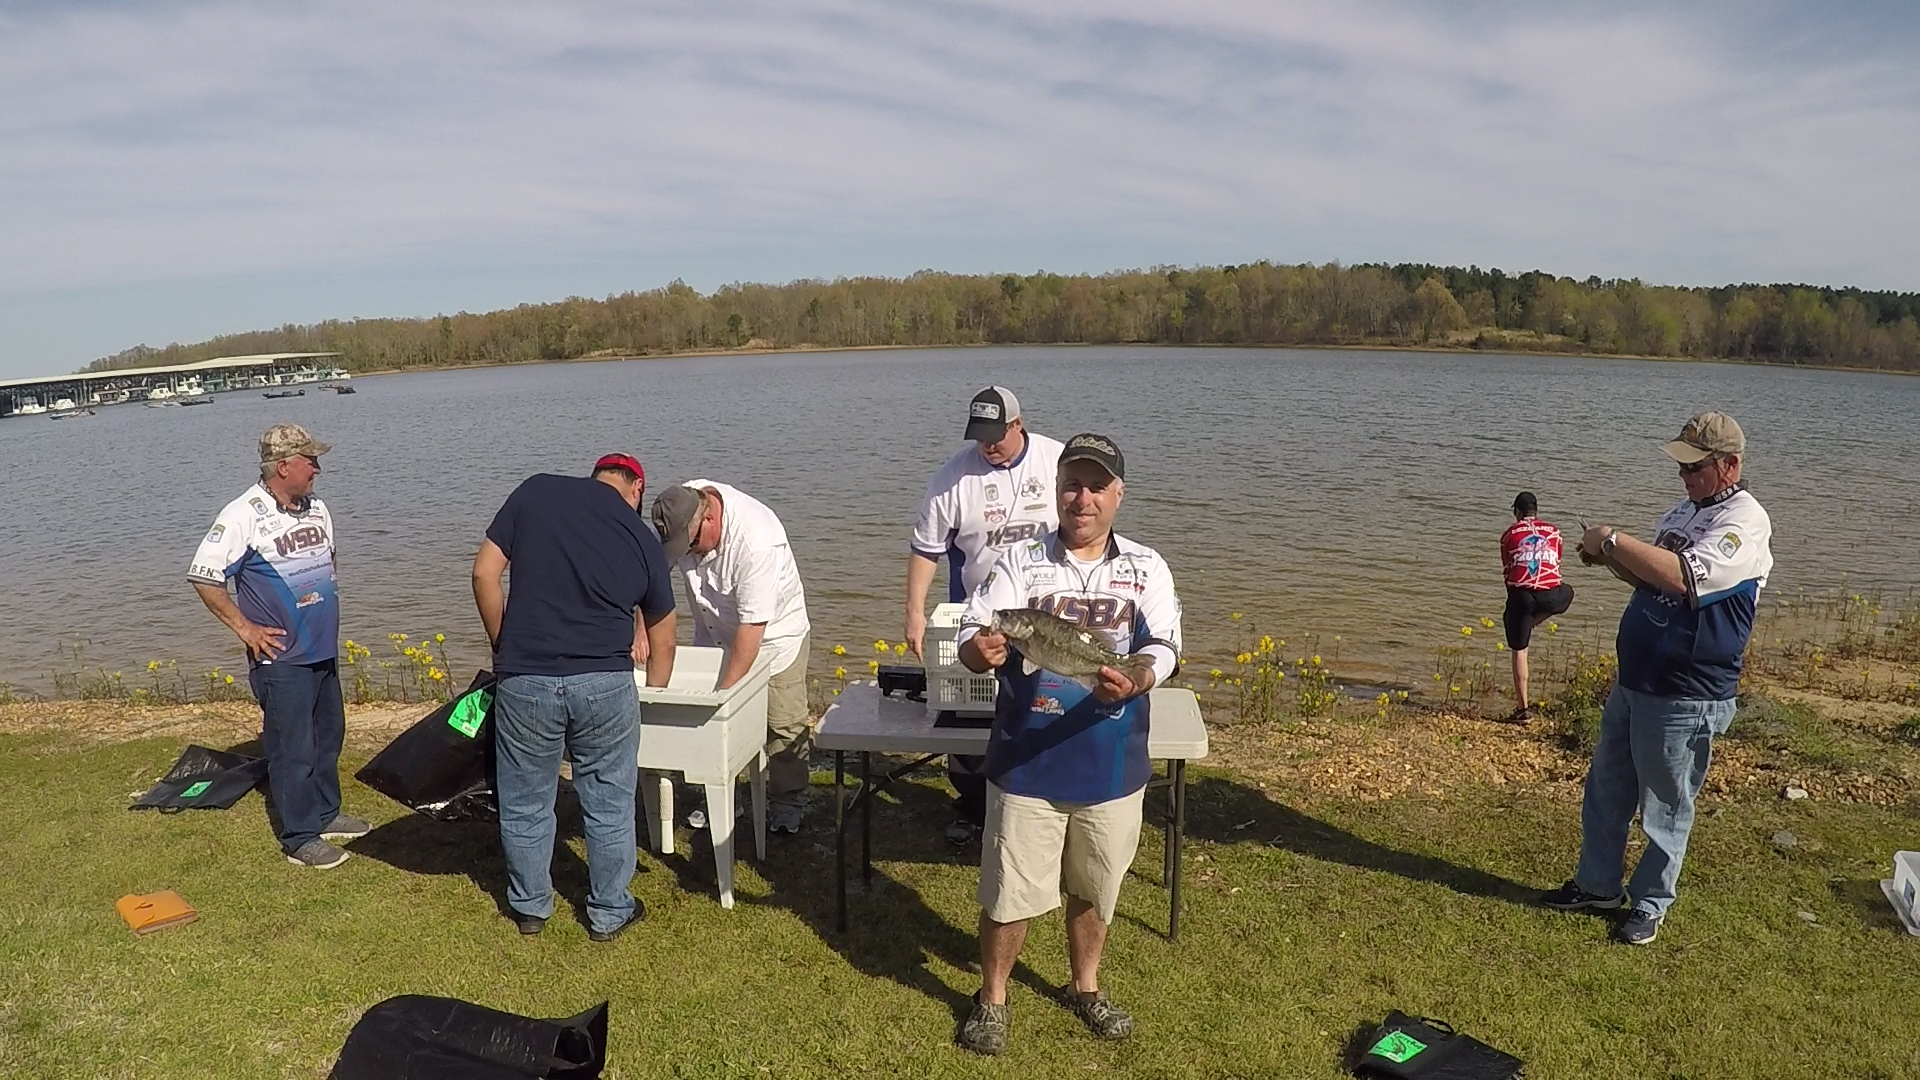 kentucky lake tournament24